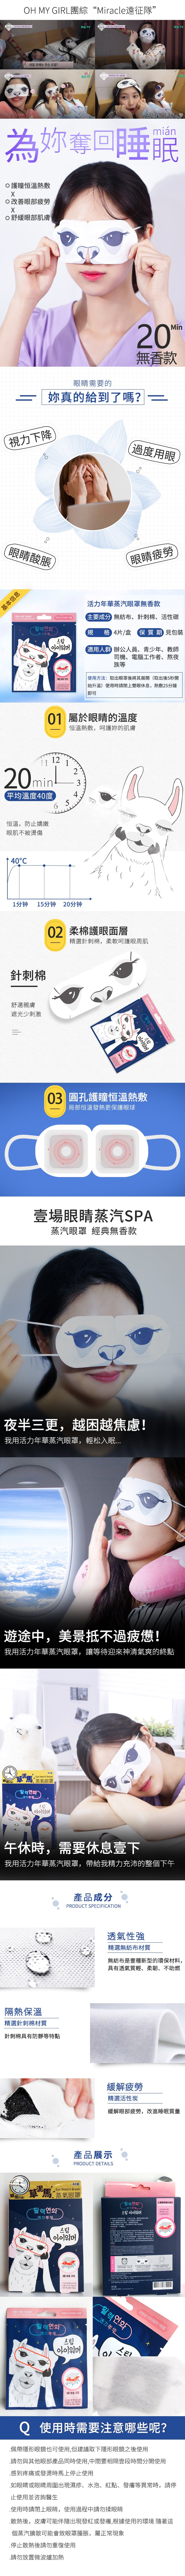 Jetour Mall Youth Over Flower 草泥馬特別版好好休息蒸氣眼膜(無香)4片裝 Llama Limited Edition EYE NEED A BREAK EYE WARMER (NO SCENT) 4PCS